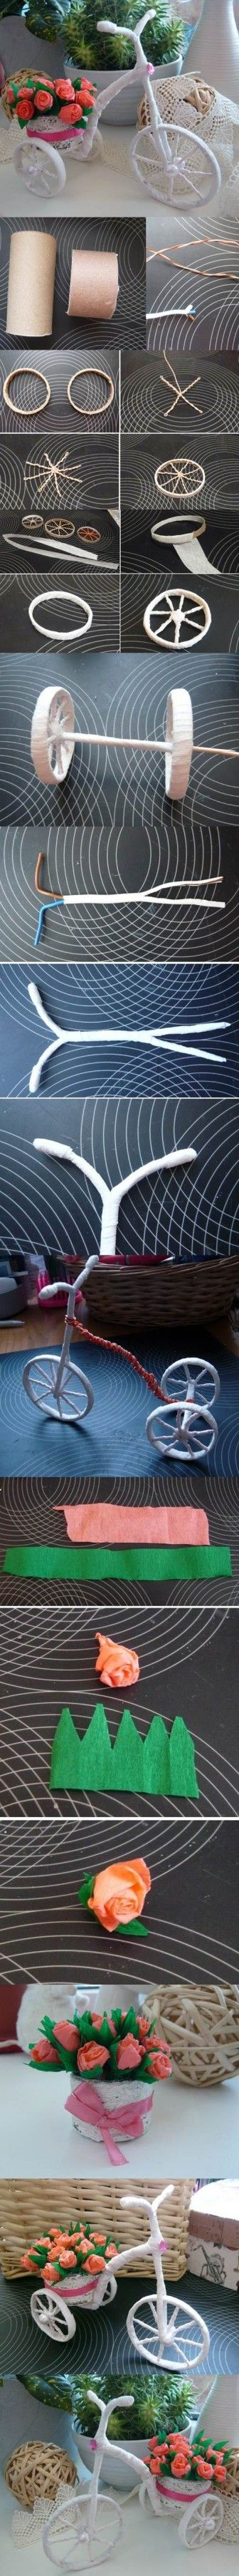 DIY Little Bike Carrying Beautiful Flowers Decoration